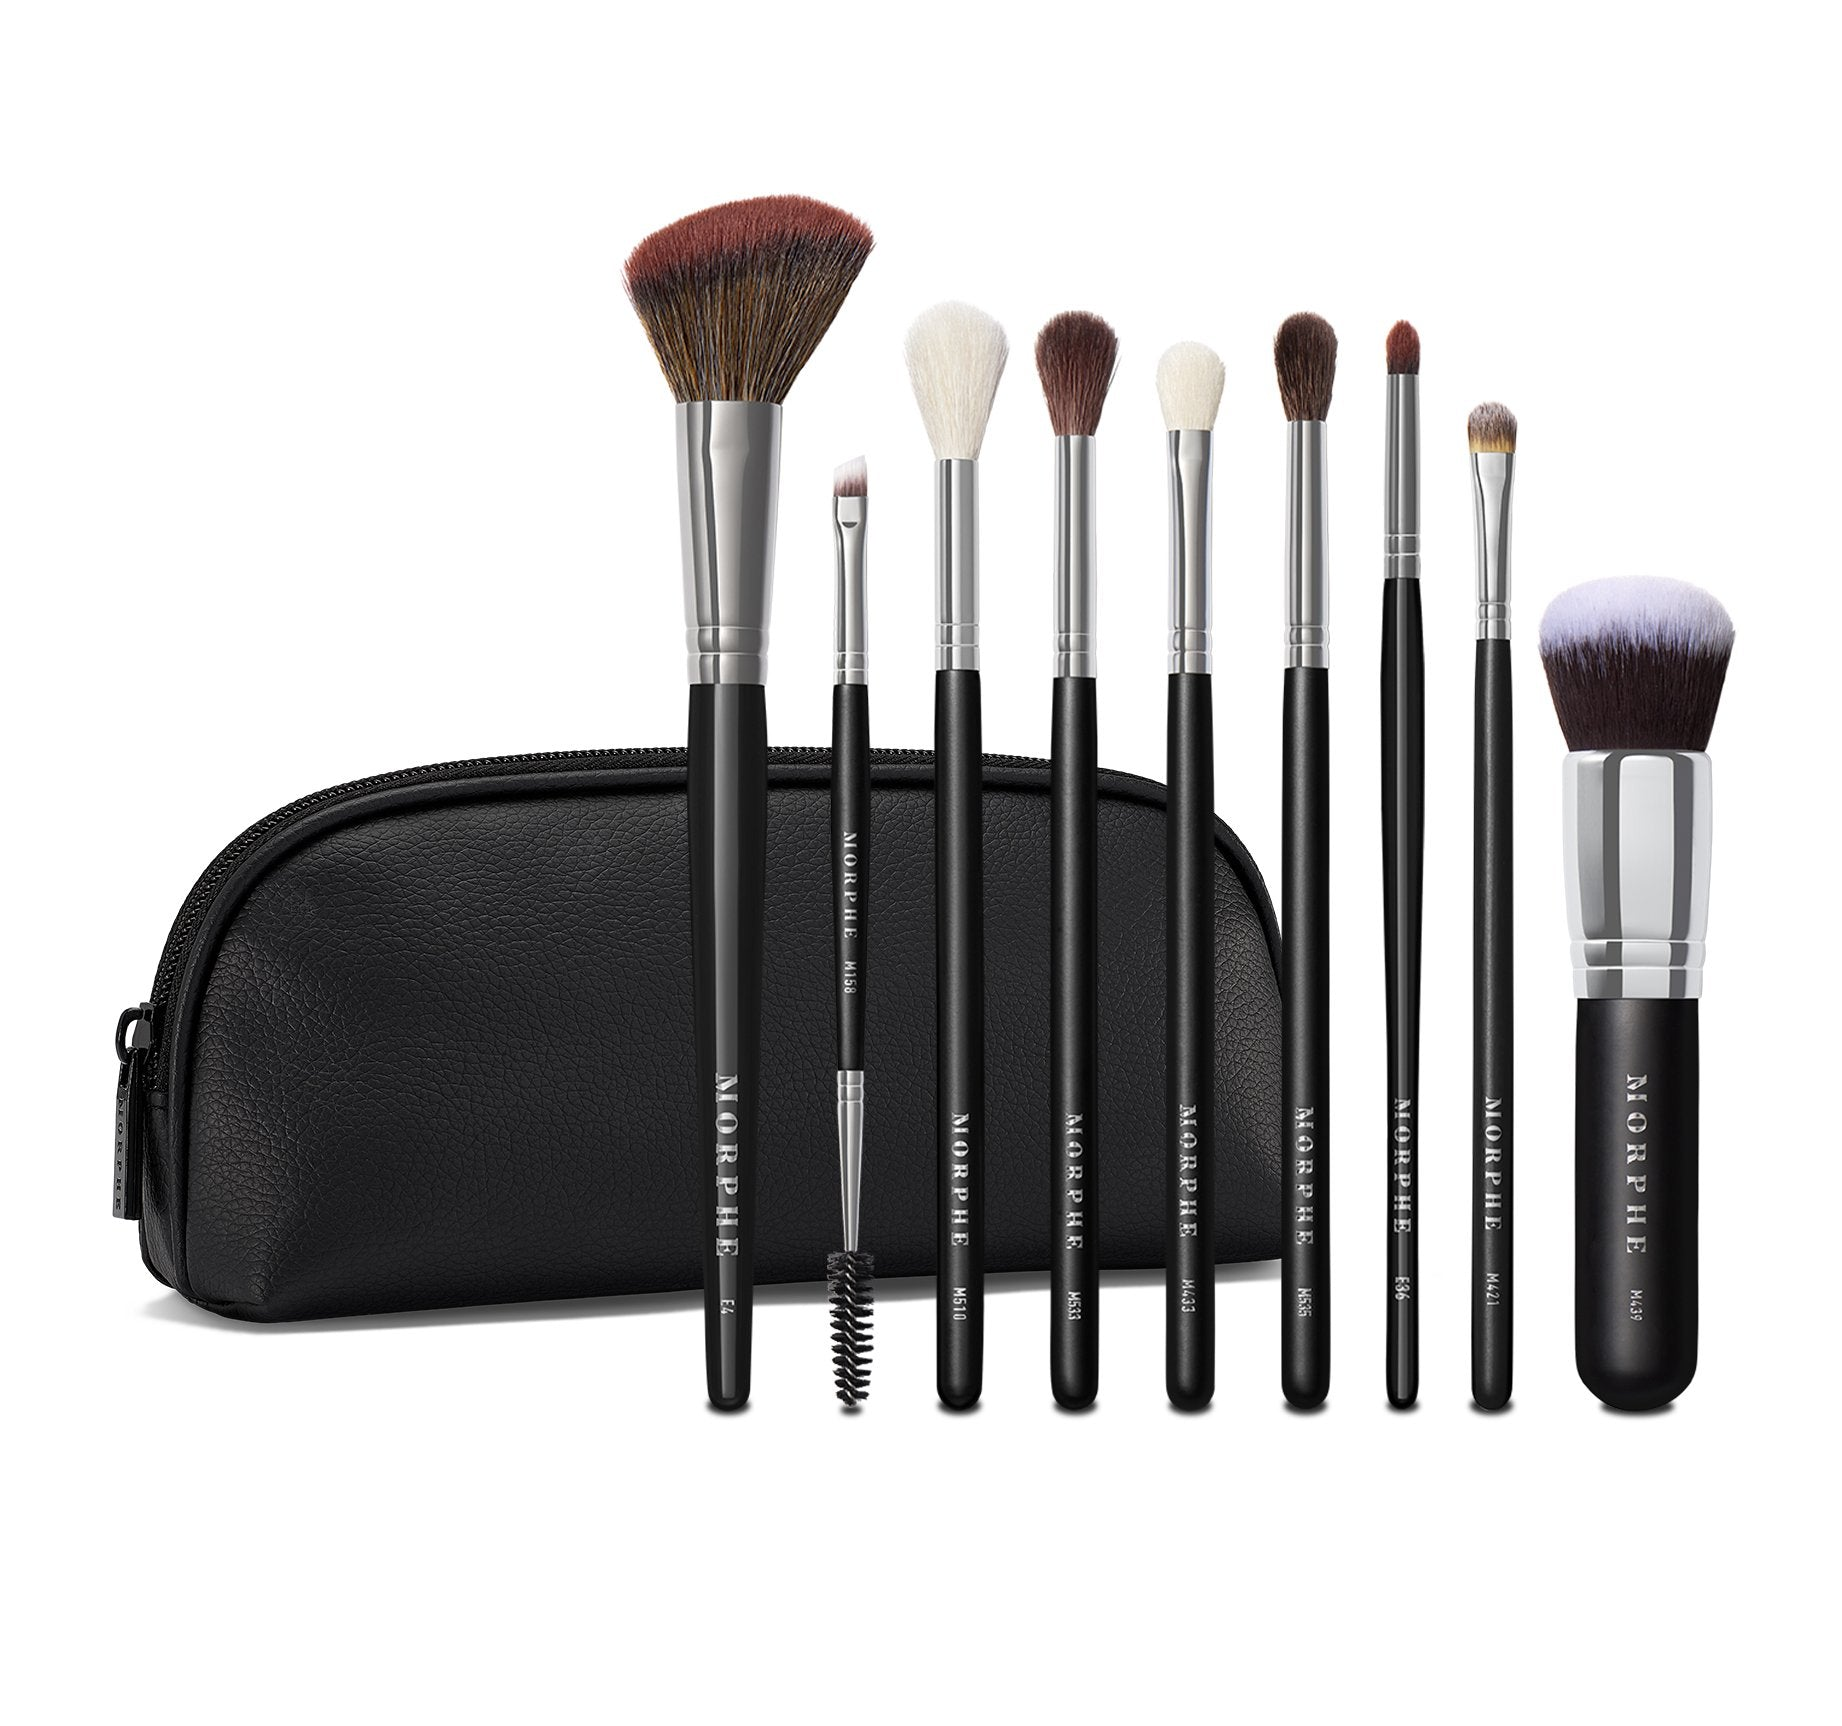 MORPHE X MANNY MUA GLAM BRUSH COLLECTION 9-PIECE FACE & EYE BRUSHES + BAG, view larger image